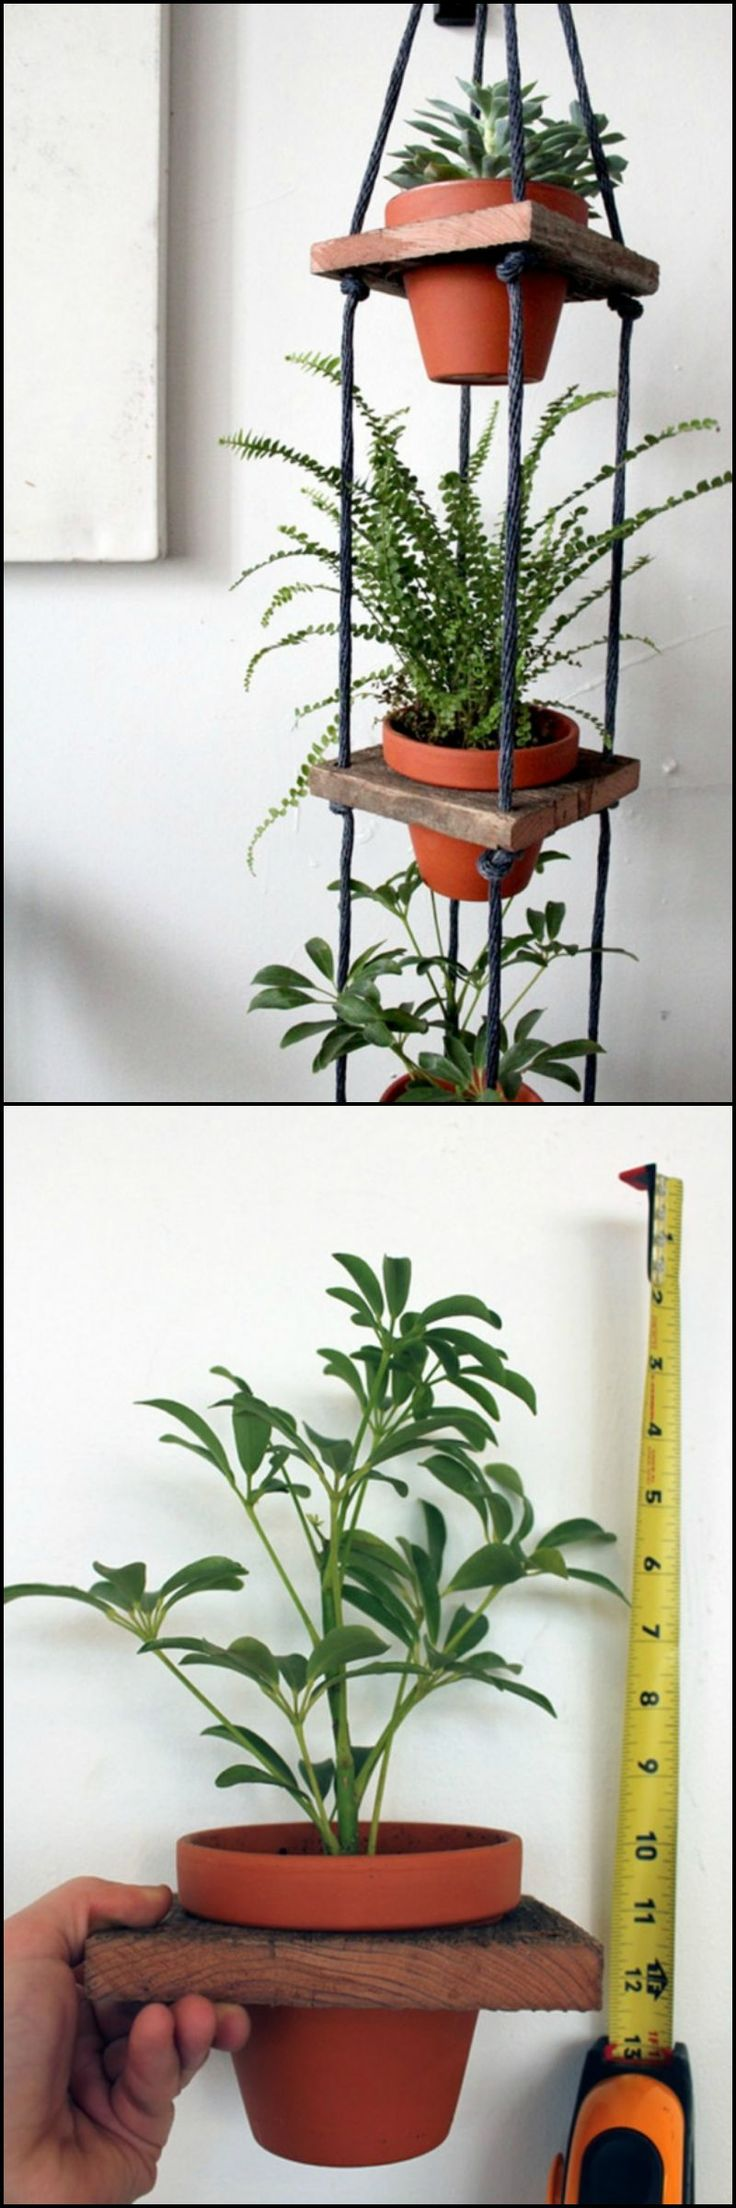 How To Make Tiered Hanging Pots  http://theownerbuildernetwork.co/69cu  Interested in going vertical with your greenery, why not make one of these tiered hanging planters?  You can start you own vertical garden. All you need is a bit of scrap wood, some rope, a few basic woodworking tools, and terracotta pots.